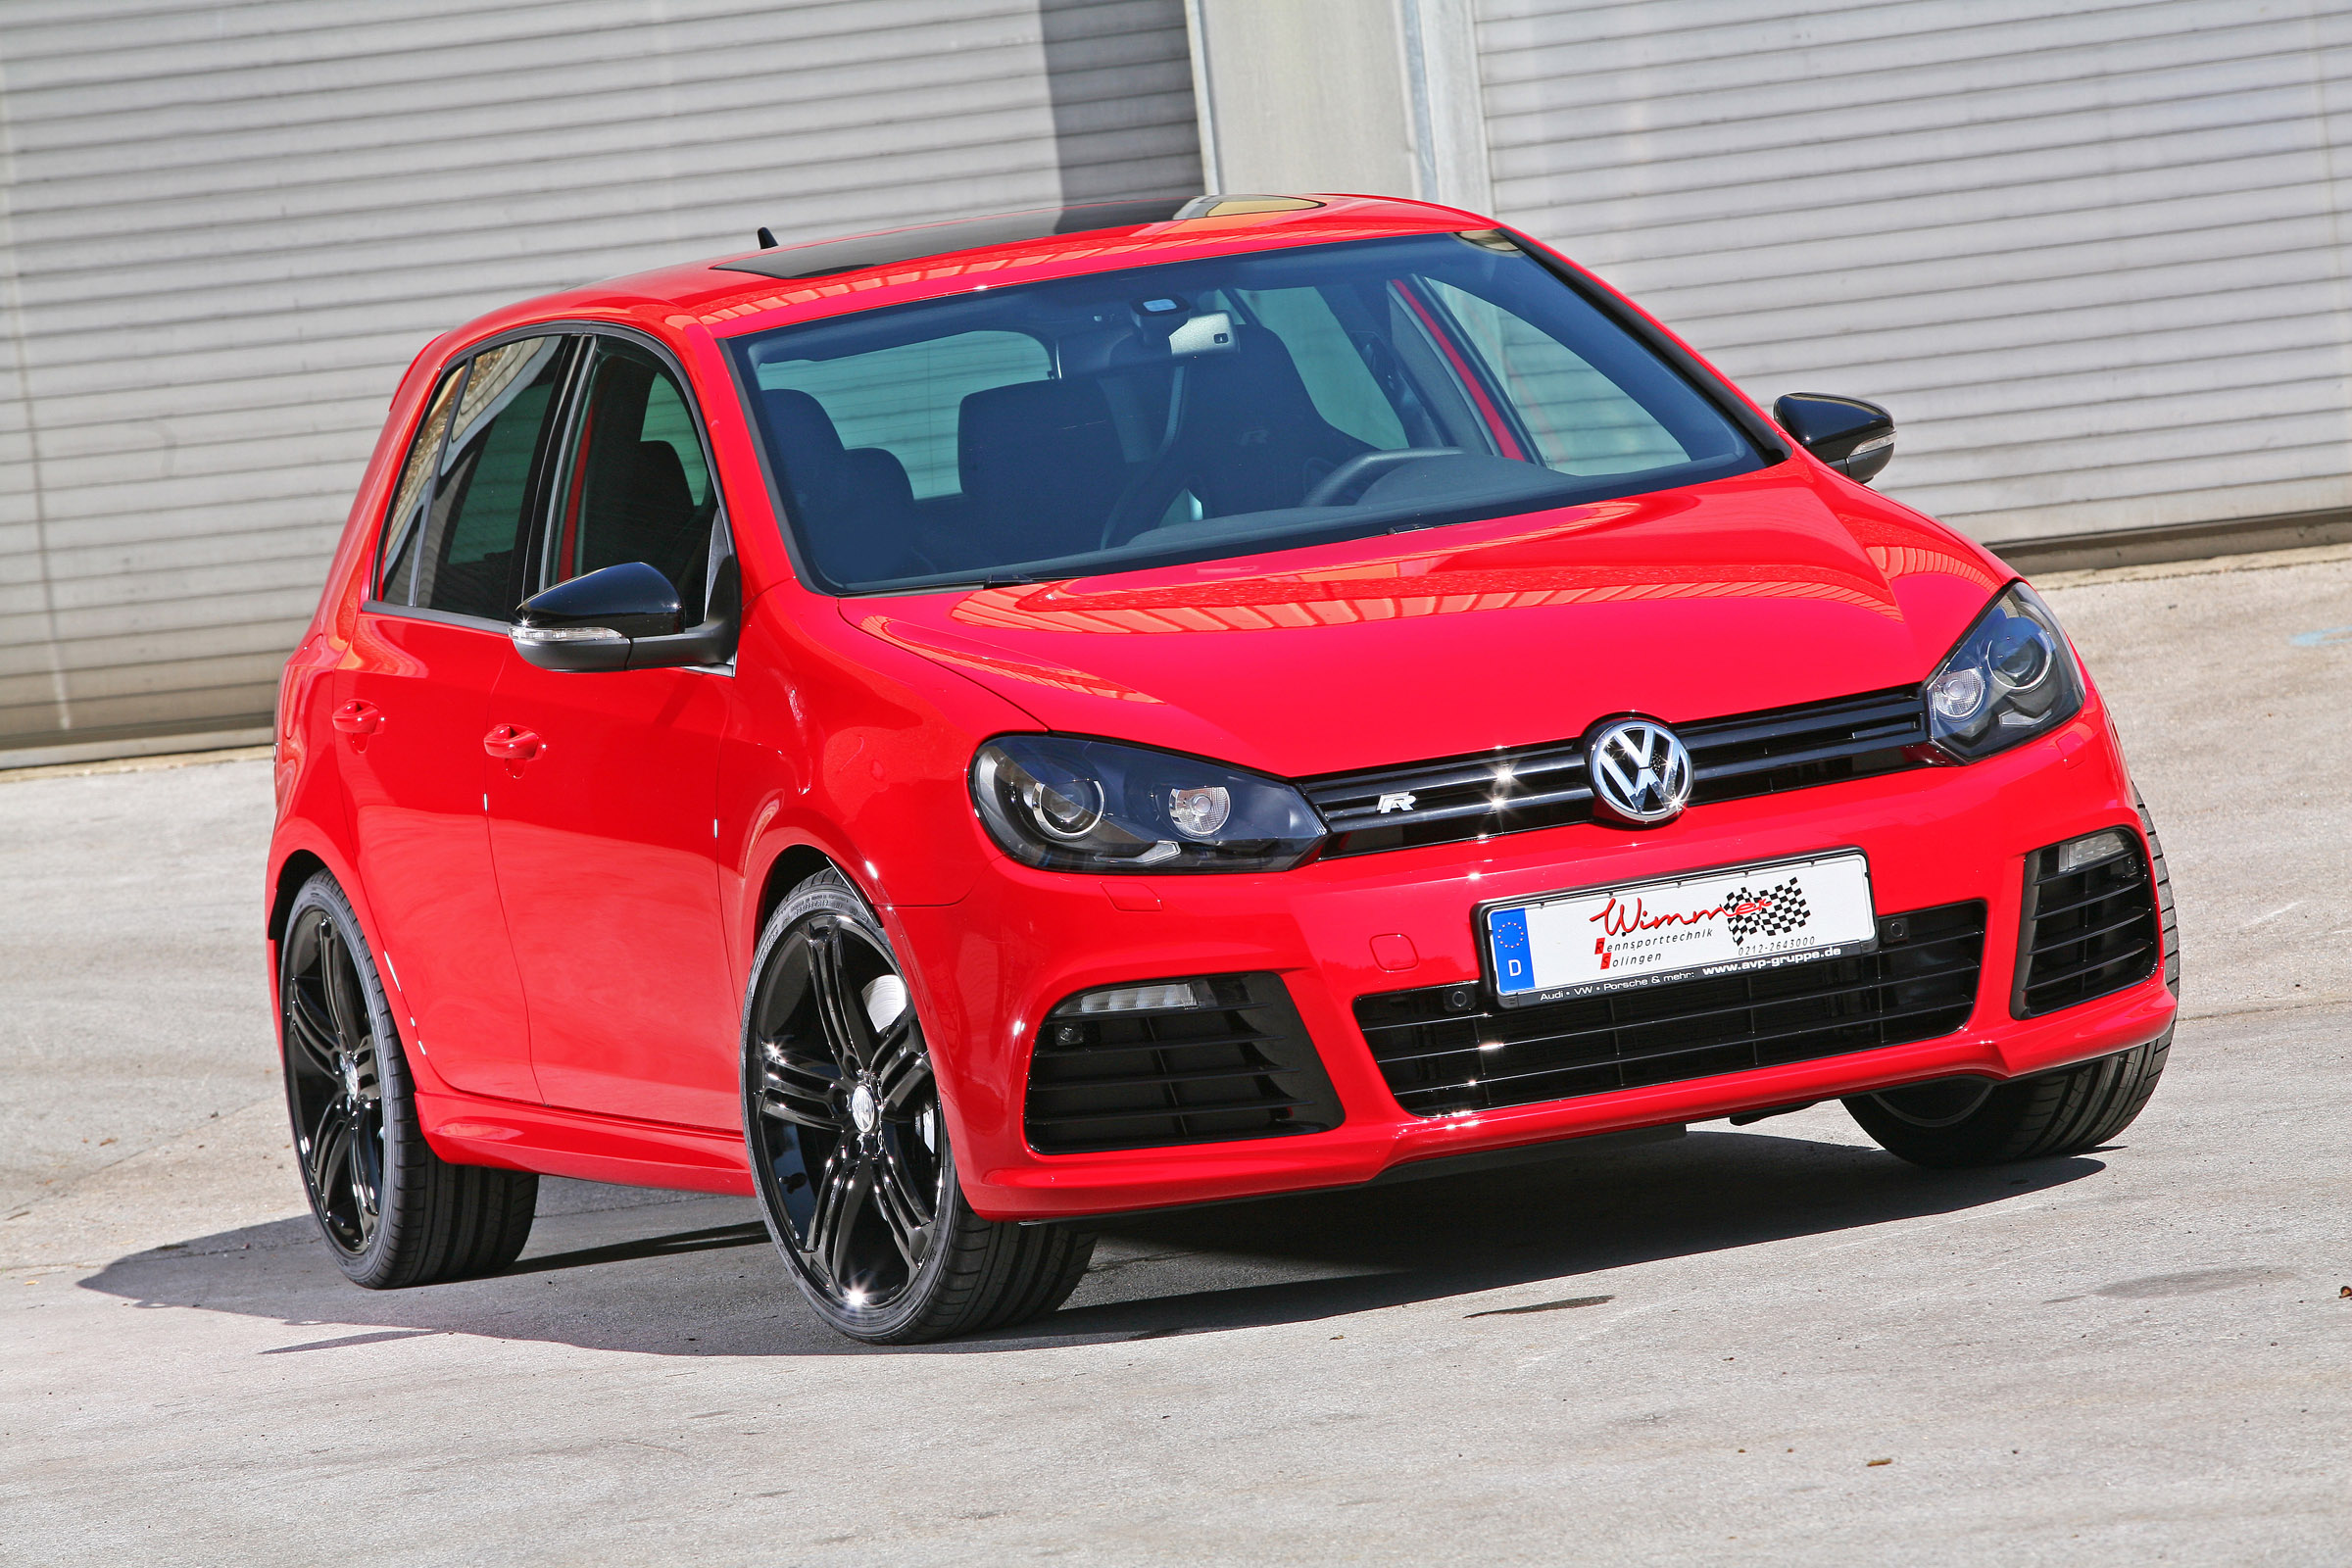 wimmer rs presents its red devil v an extraordinary powerful golf 6 r. Black Bedroom Furniture Sets. Home Design Ideas